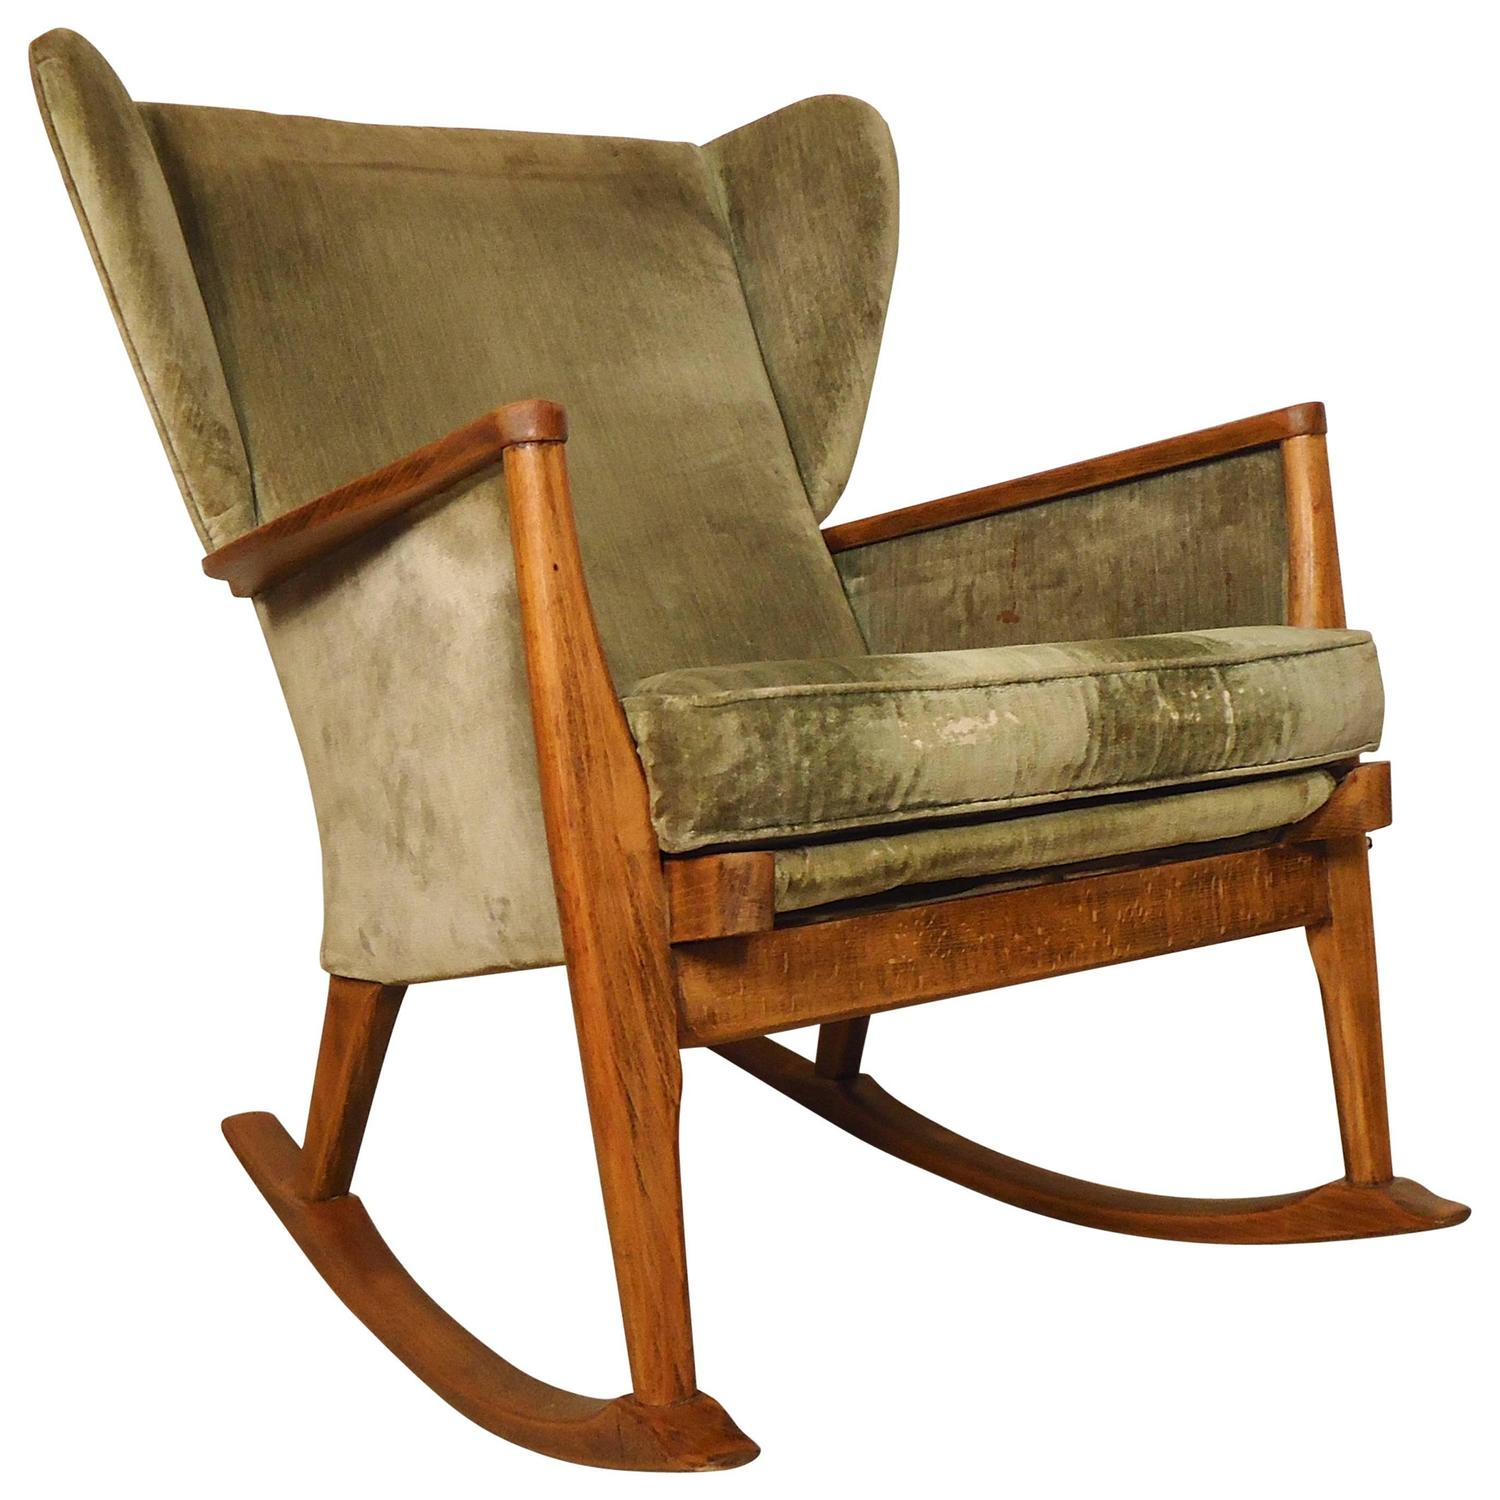 Enjoyable Parker Knoll Wingback Rocking Chair For Sale At 1Stdibs Customarchery Wood Chair Design Ideas Customarcherynet